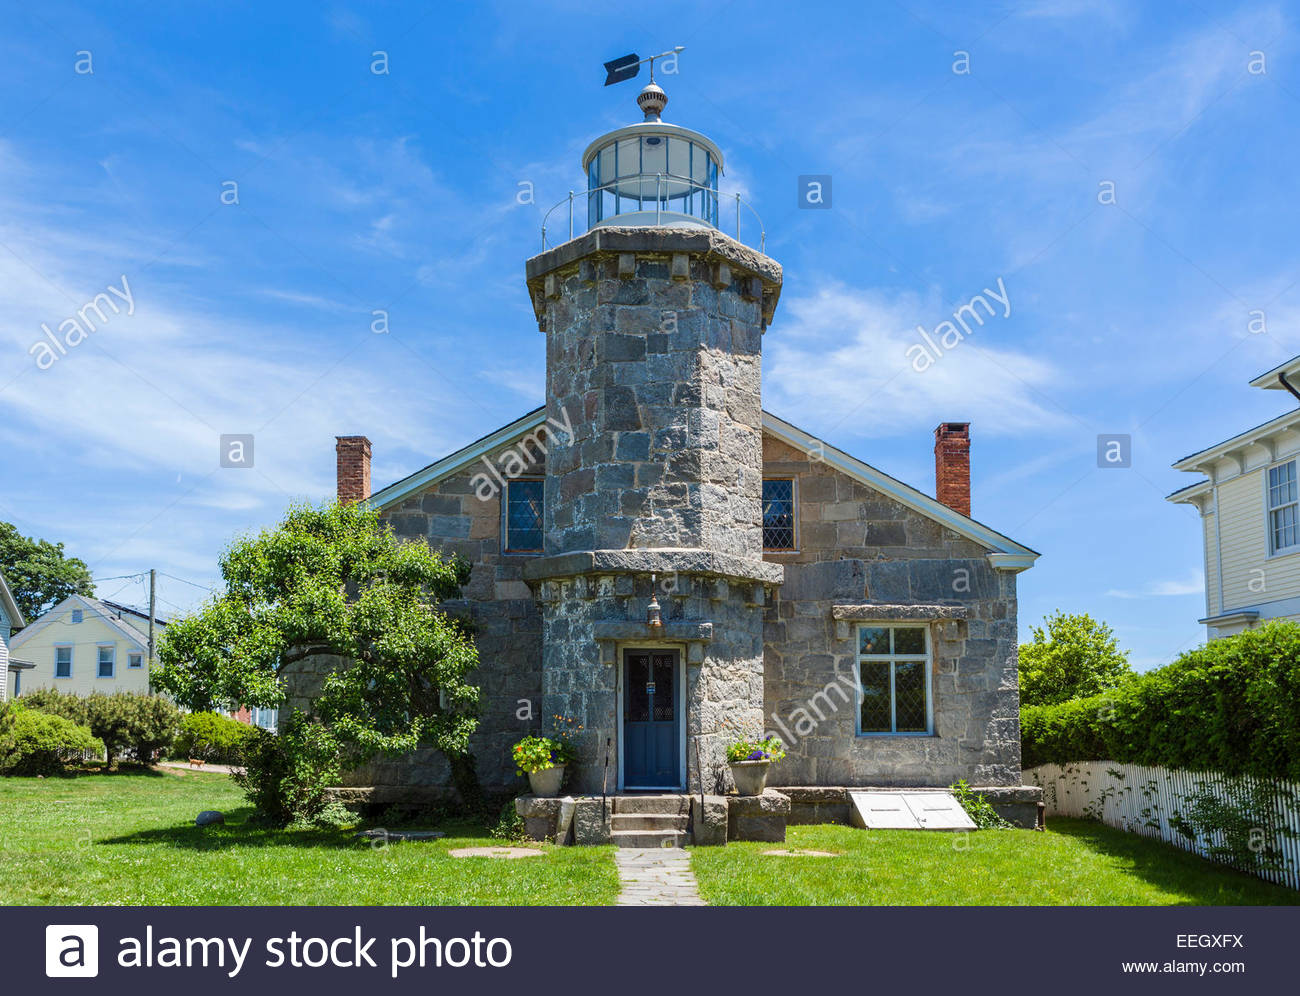 Stowe Craft Gallery & Design Center Stowe, The historic Stonington Harbor Light, now housing the Old ...